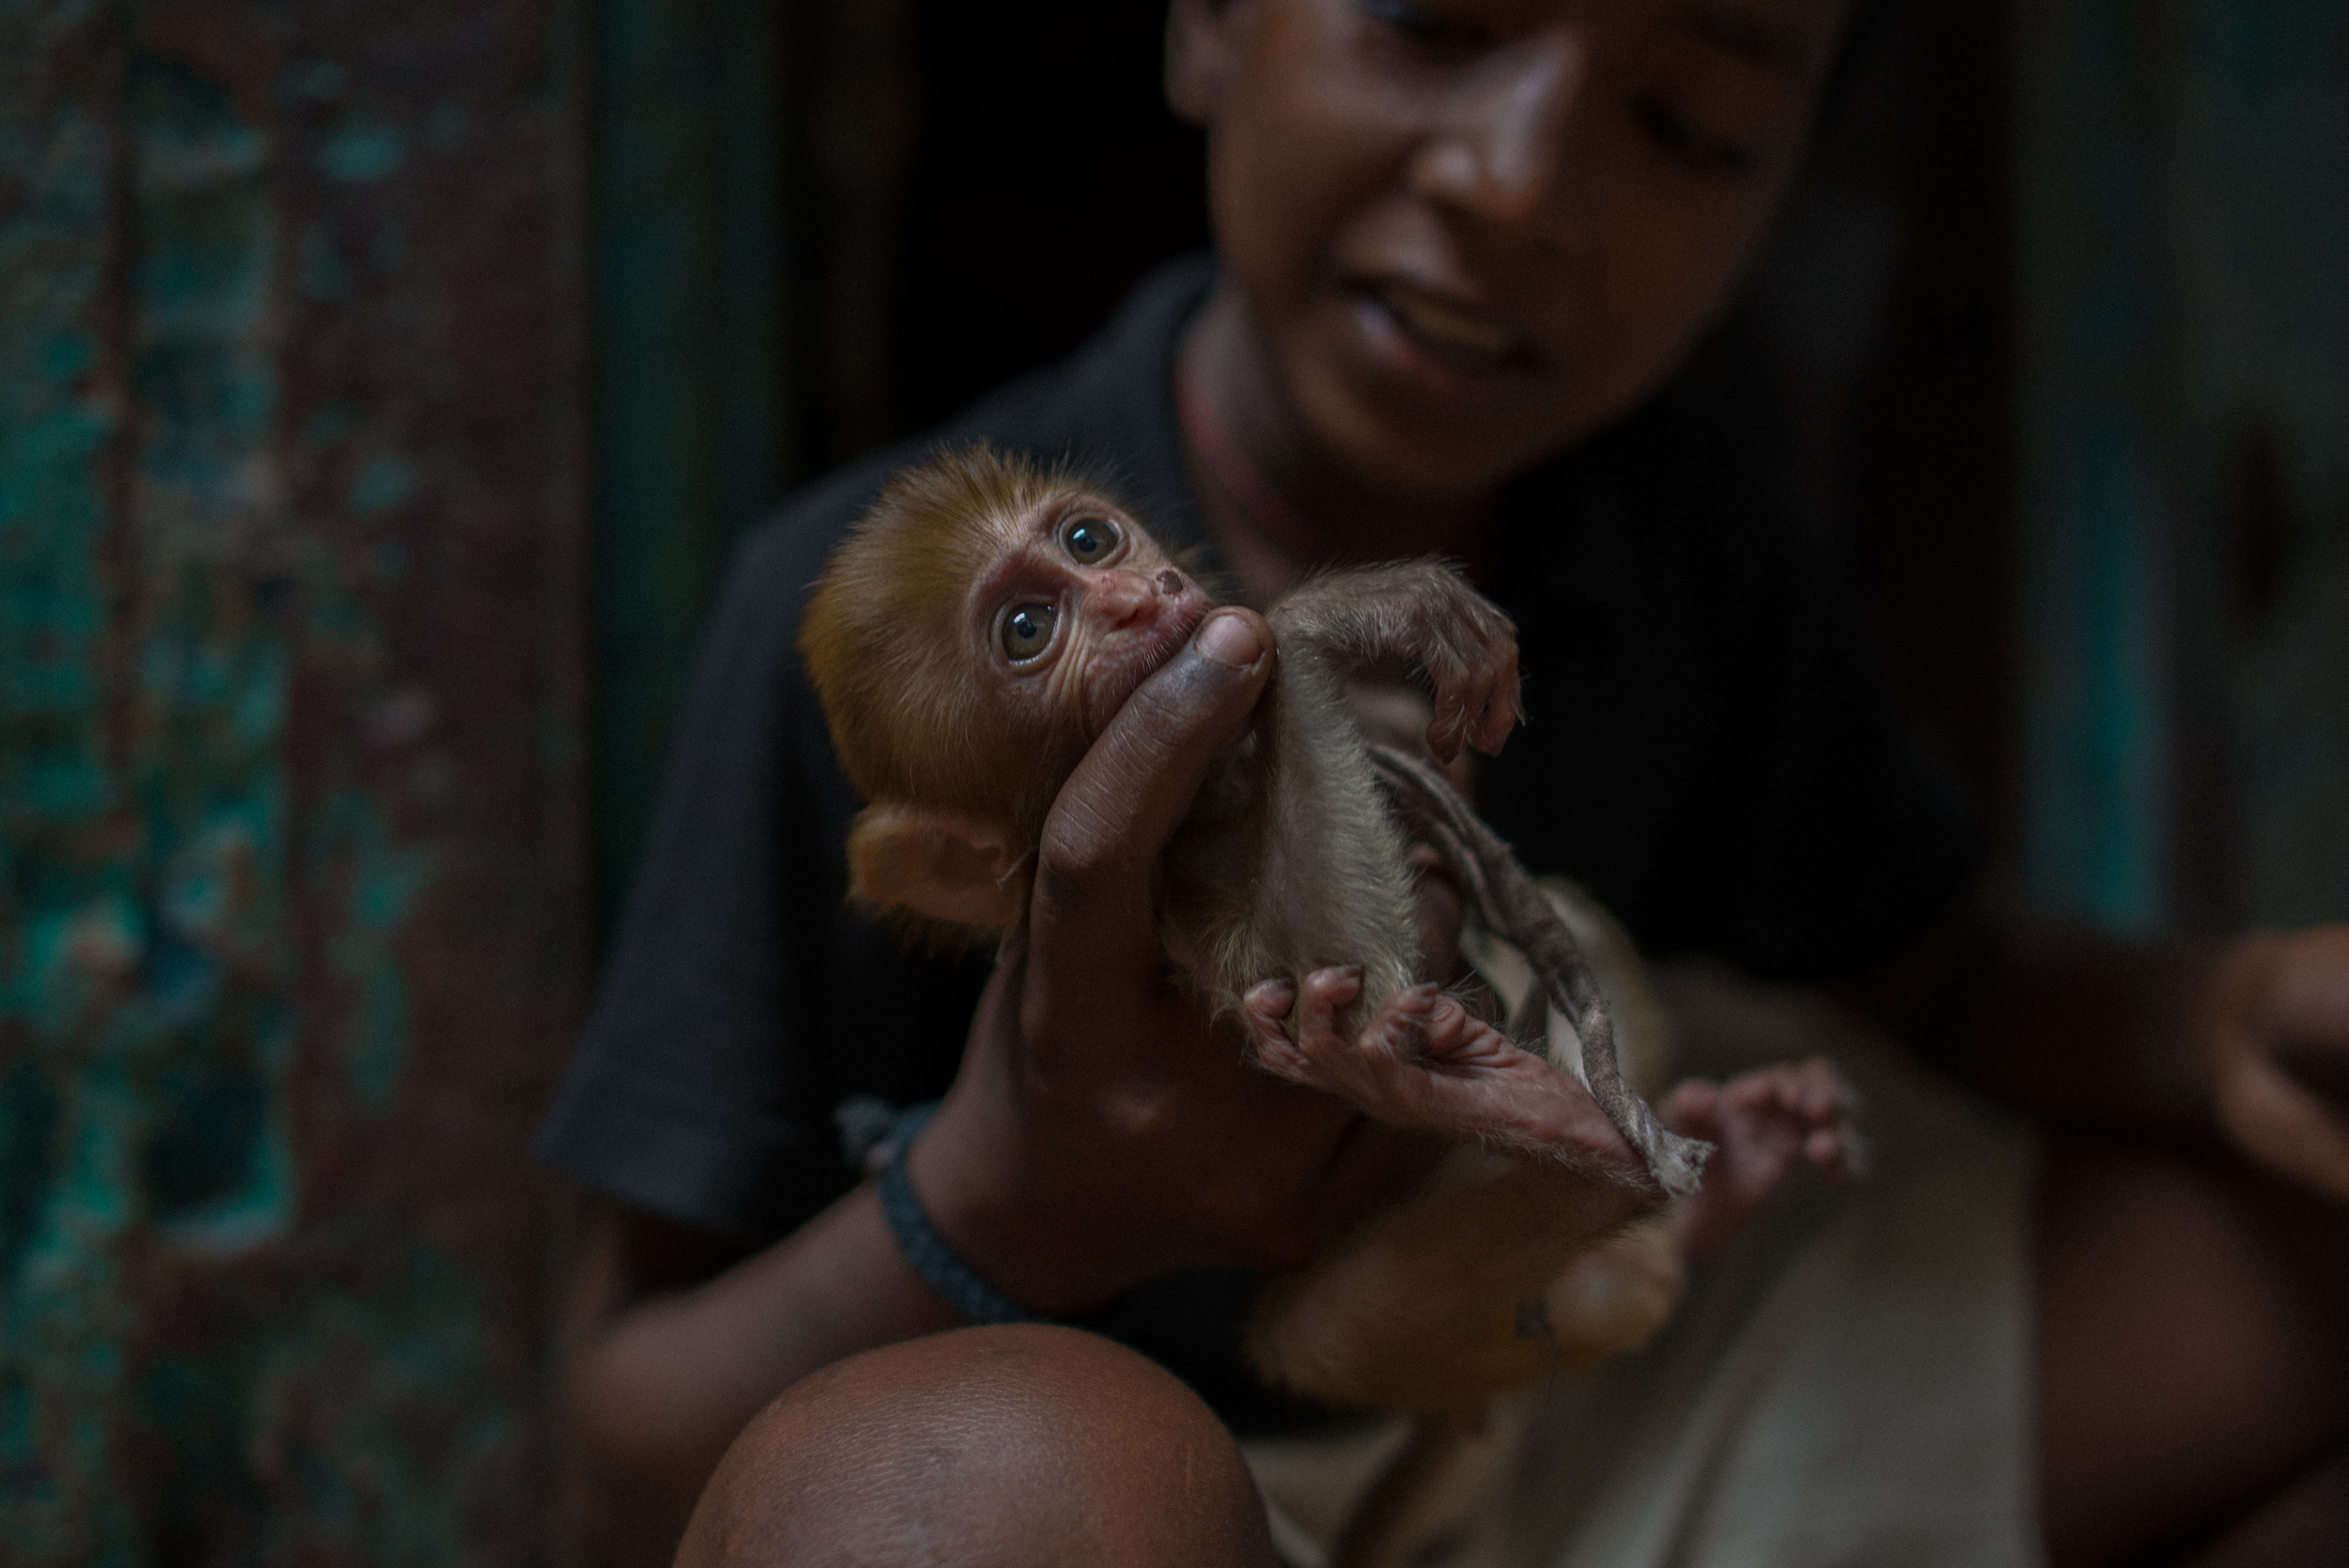 Boy with pet monkey